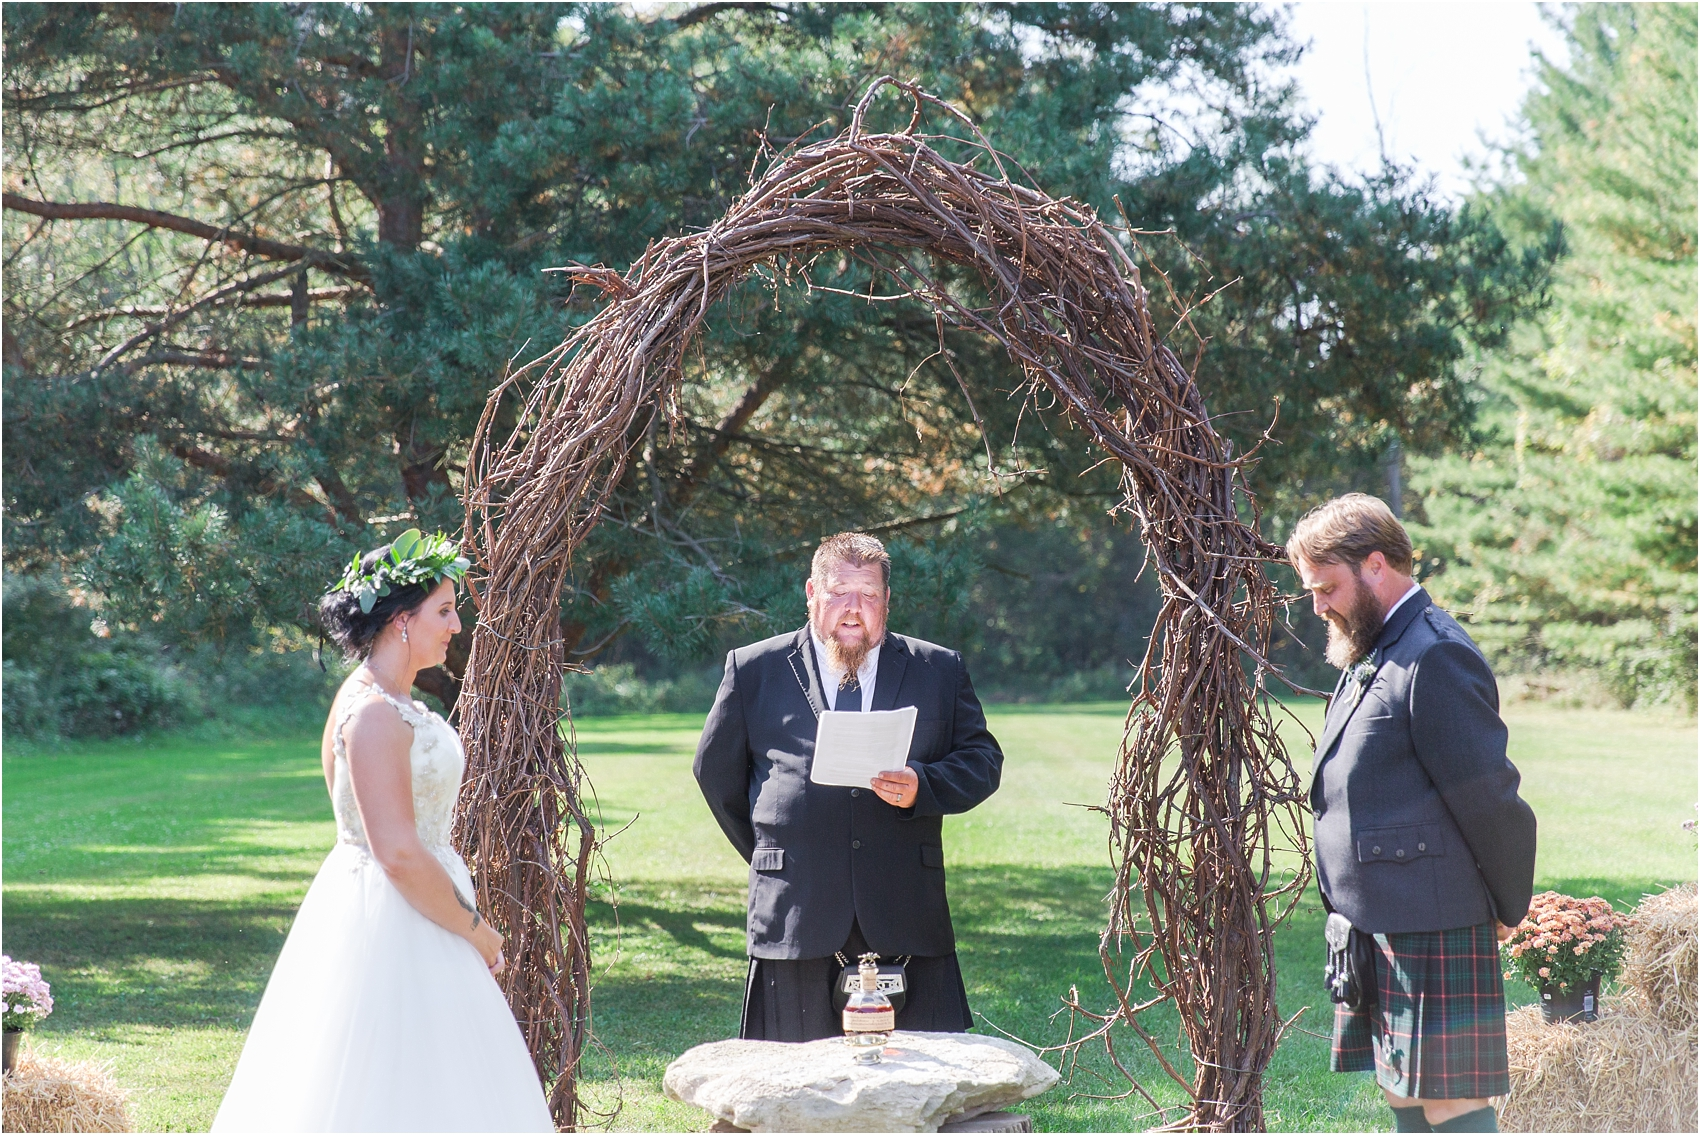 scottish-inspired-wedding-photos-in-the-country-in-port-sanilac-michigan-by-courtney-carolyn-photography_0020.jpg